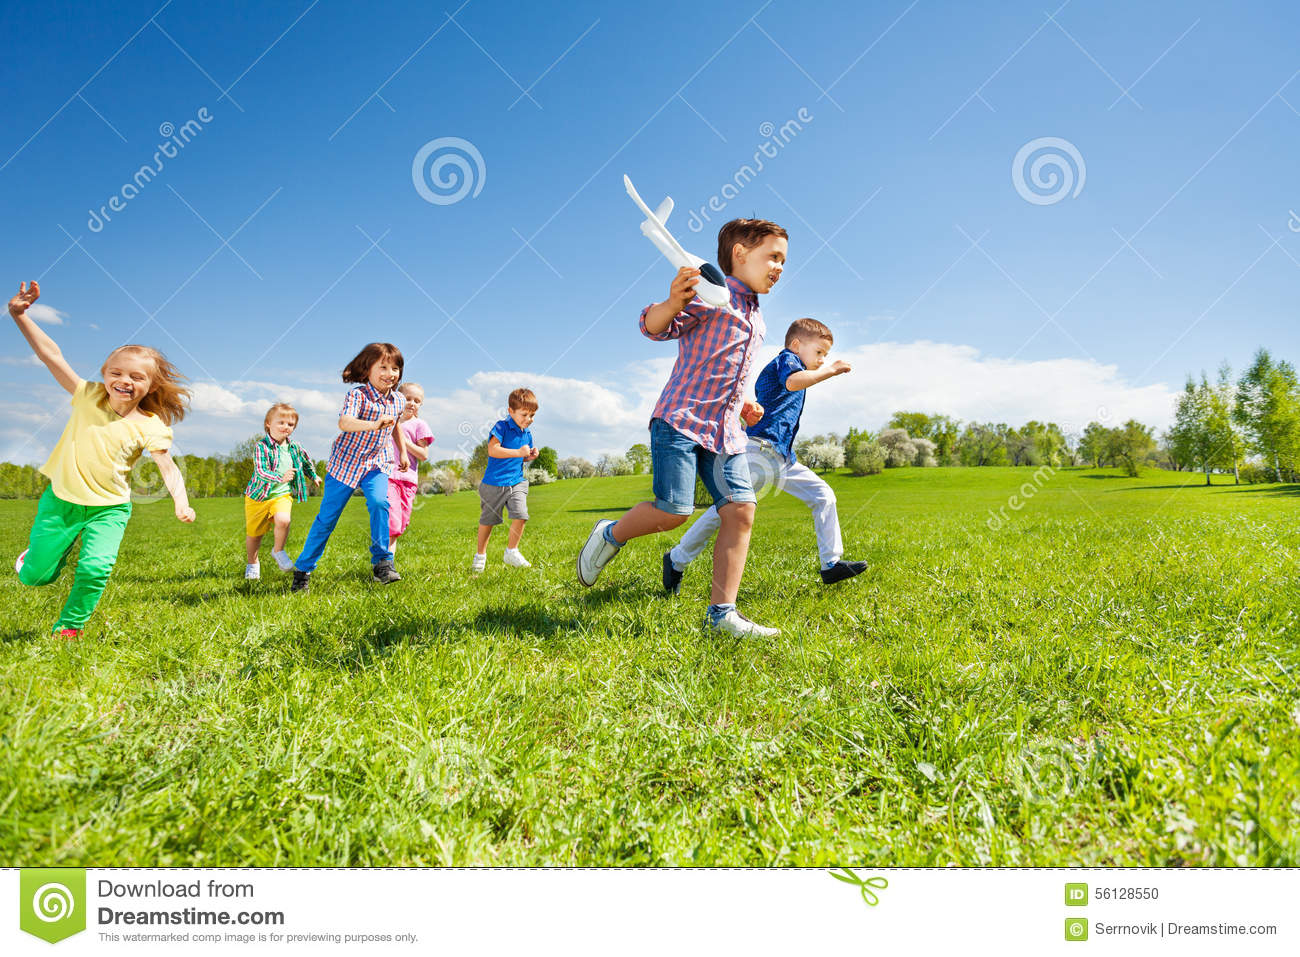 Many kids running and boy holding airplane toy